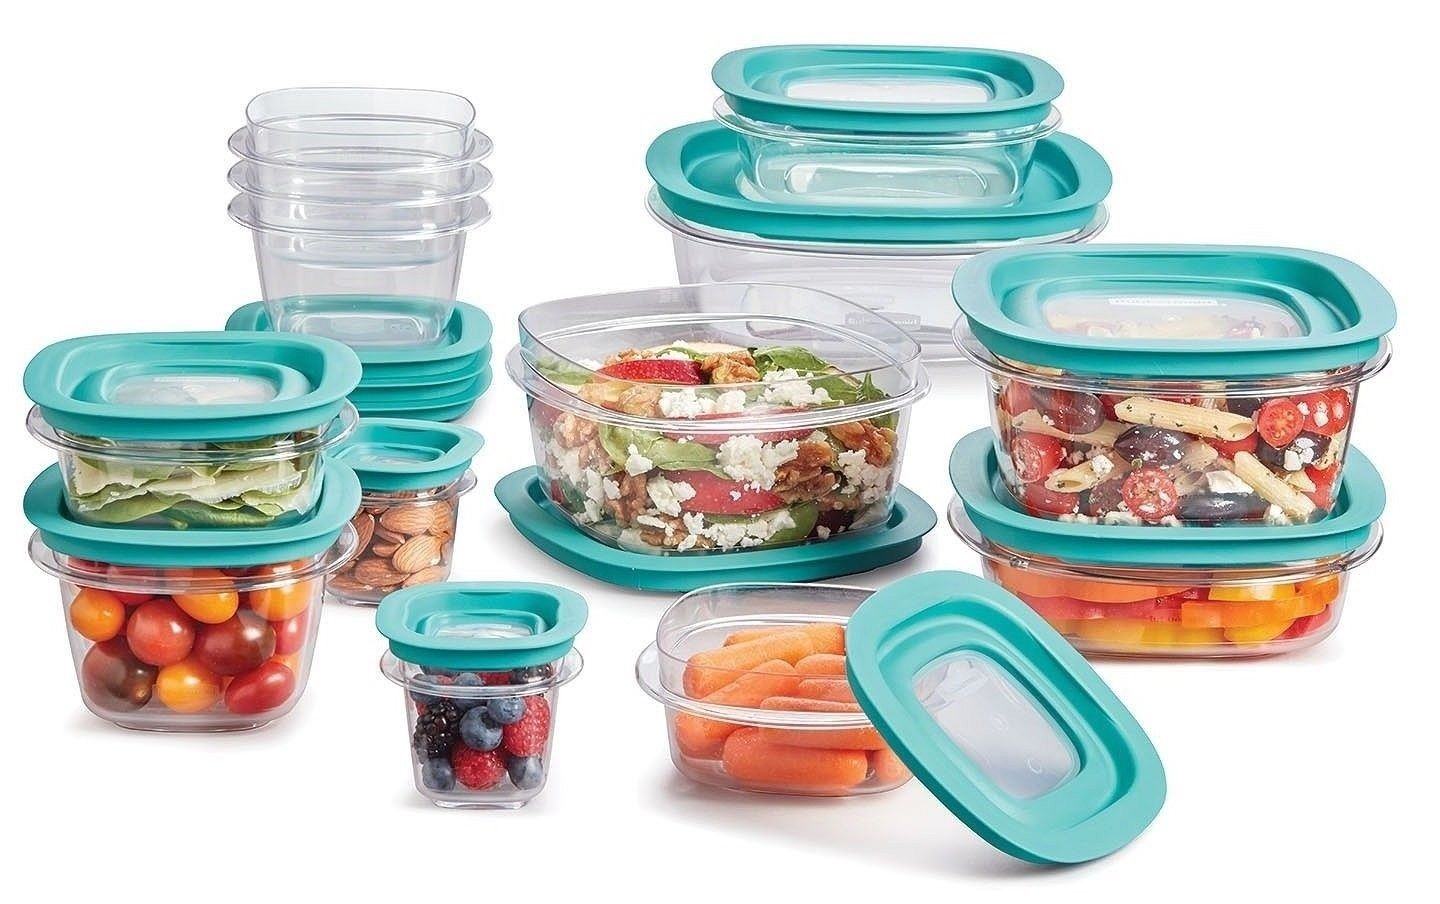 Rubbermaid 26-Piece Food Storage Set Flex & Seal Containers - Free Shipping 1